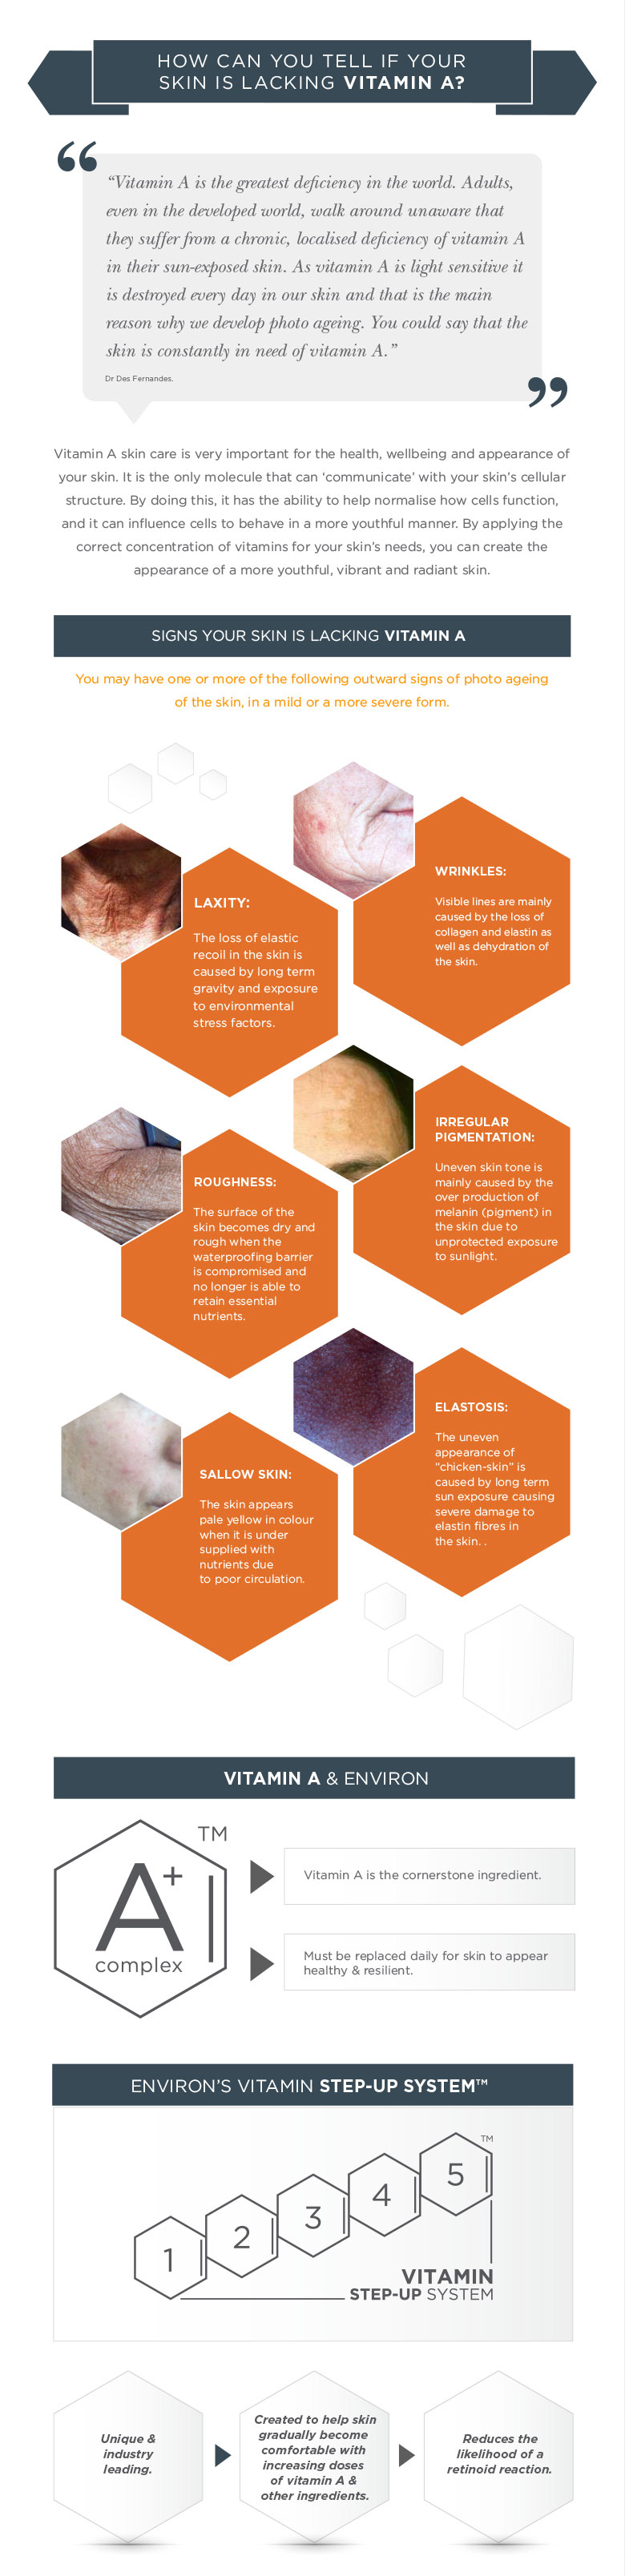 Environ Skin Care - Vitamin A Skin Care Infographic